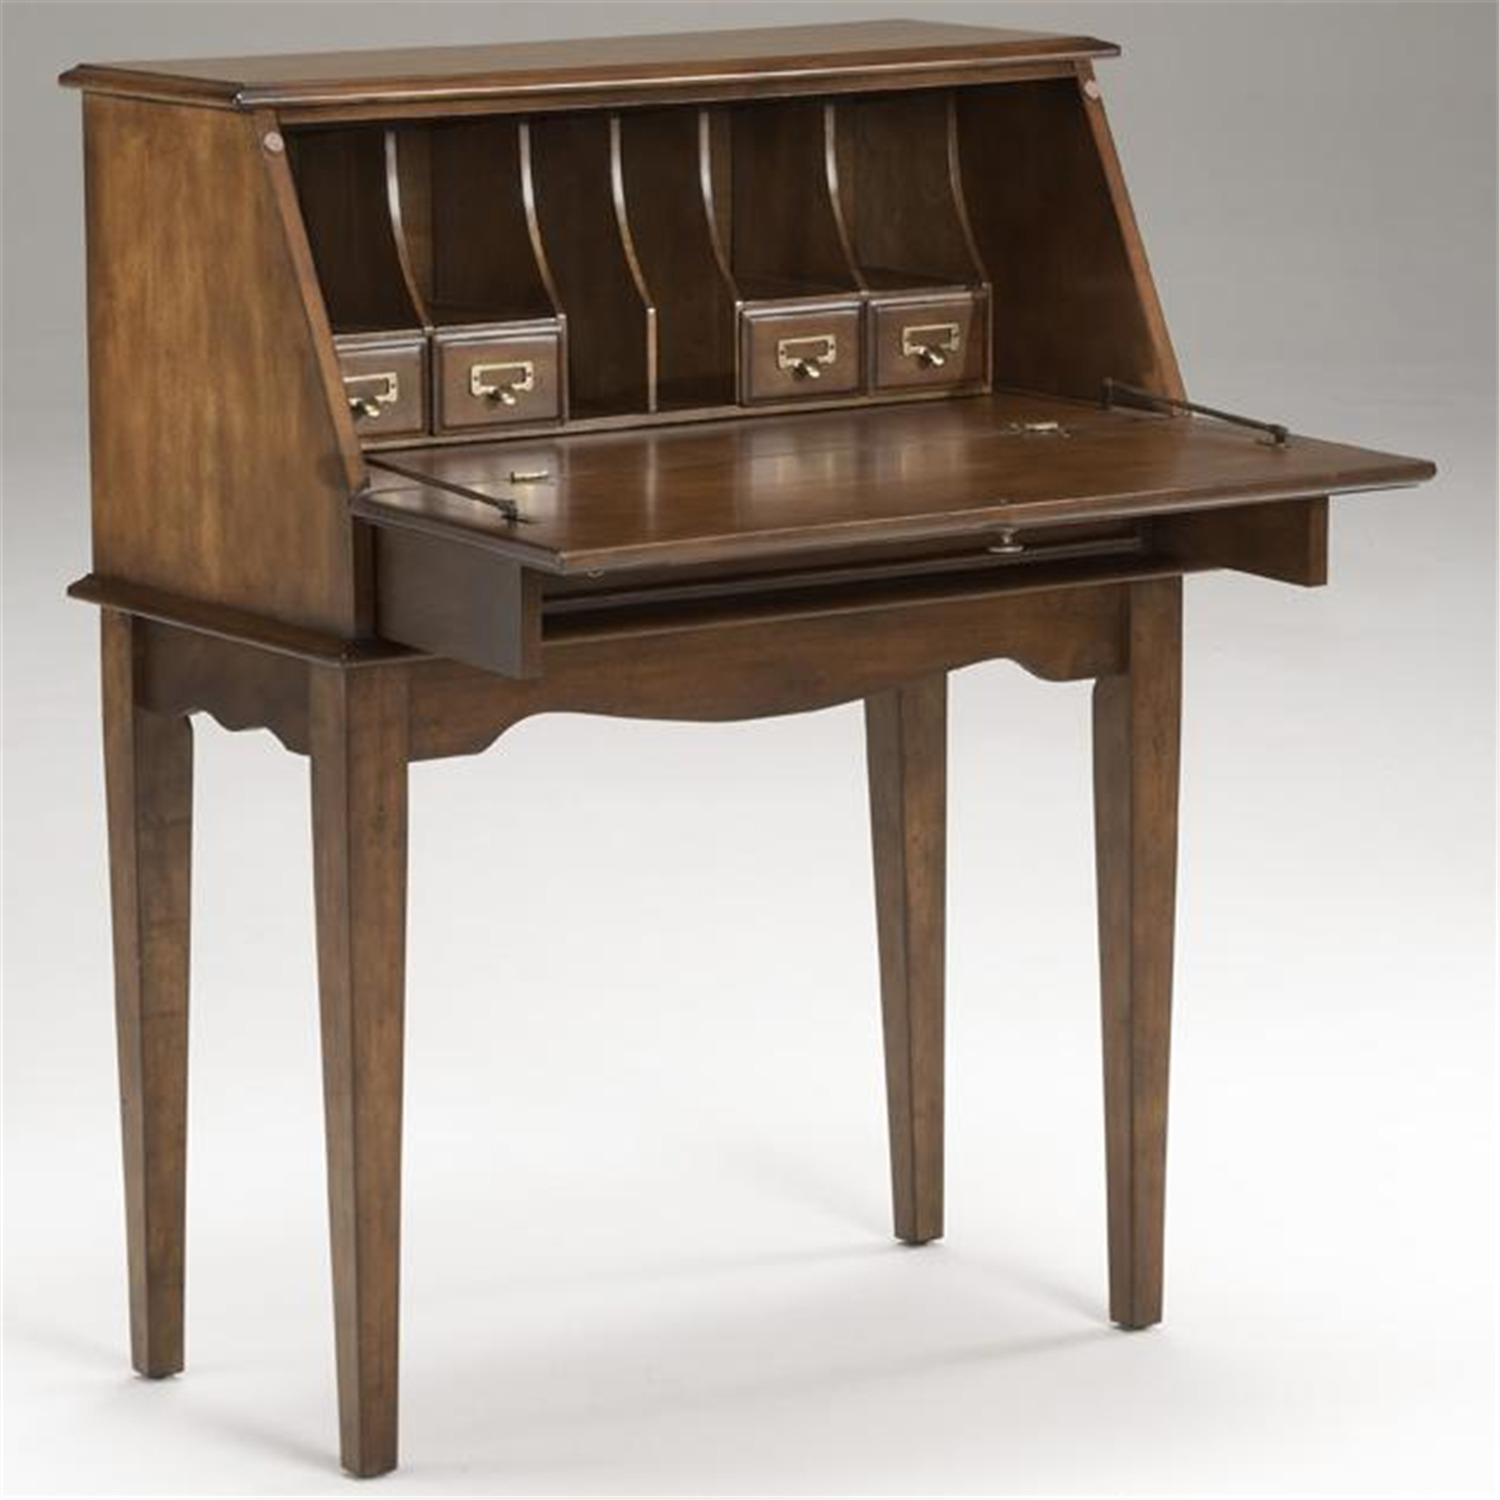 Bernards Drop Down Secretary Desk by OJ merce 7672